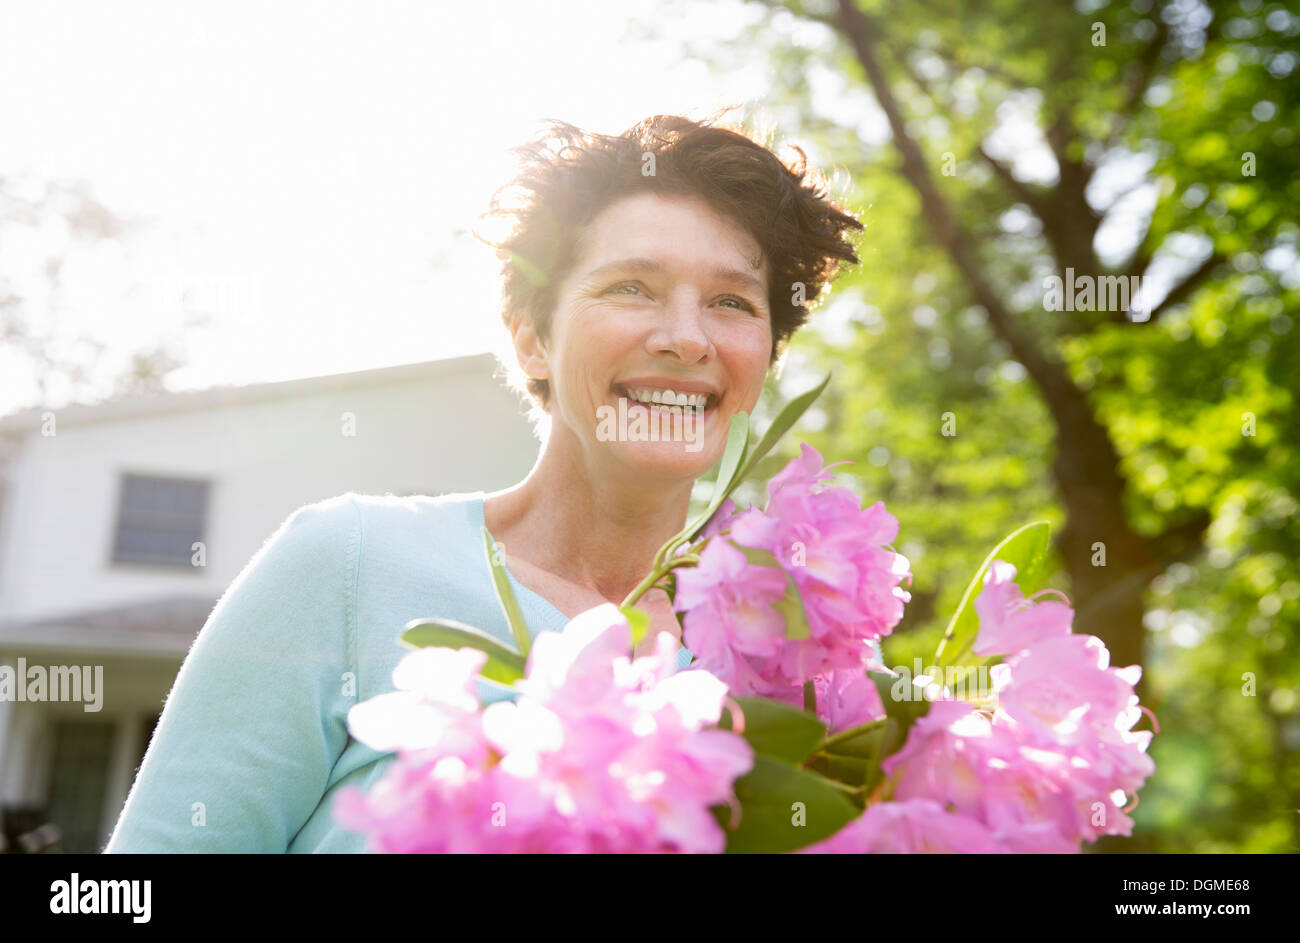 Family party. A woman carrying a large bunch of rhododendron flowers, smiling broadly. - Stock Image